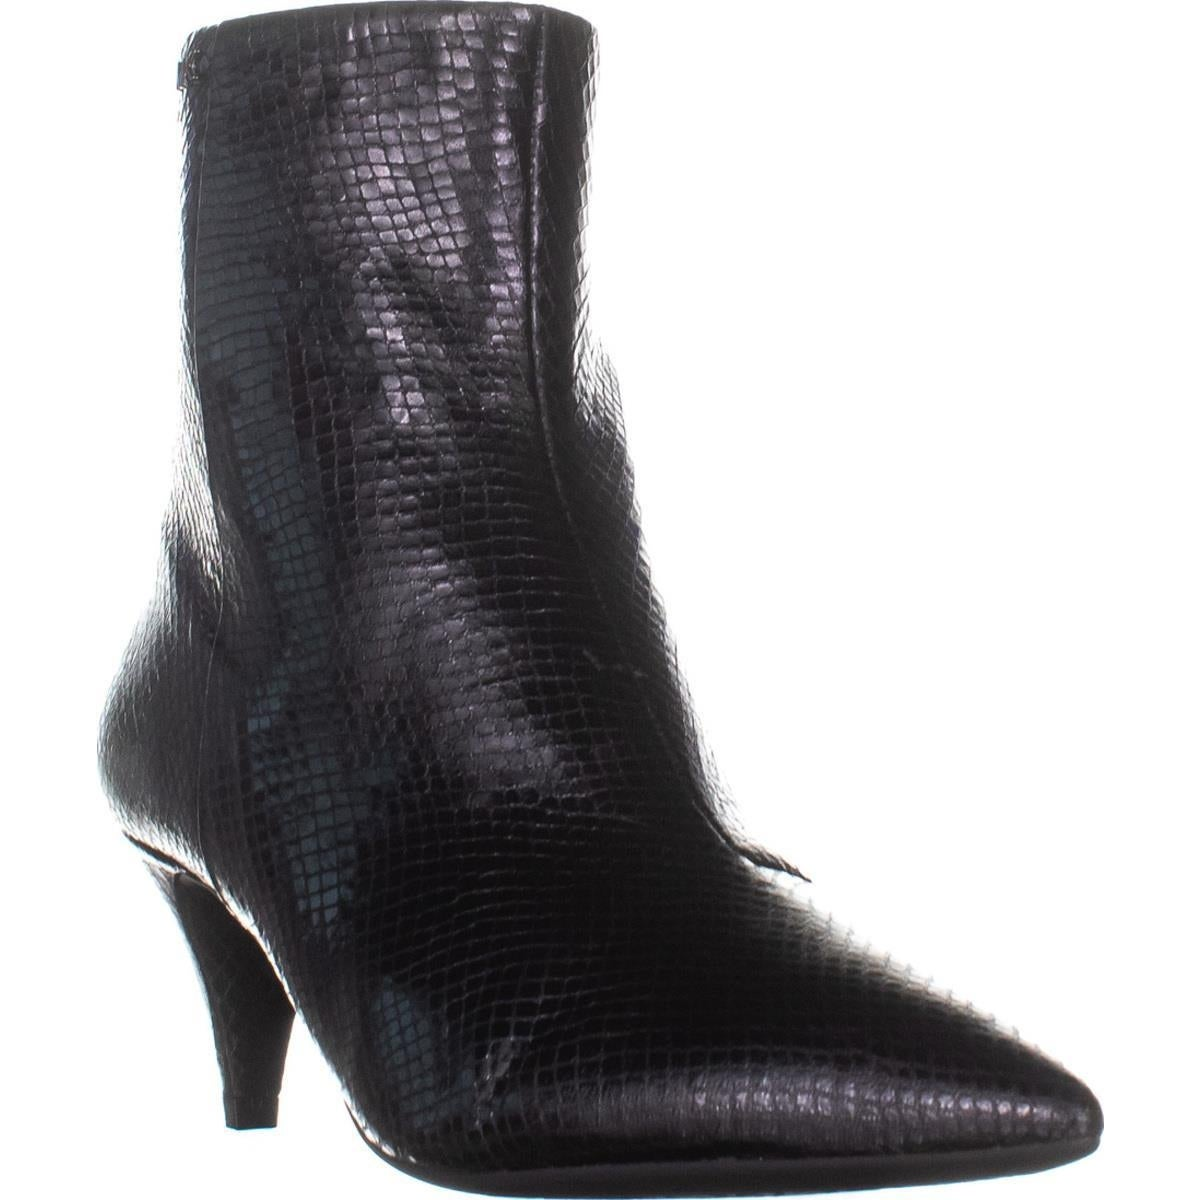 6c95a2c5ca6b Buy Michael Kors Women s Boots Sale Ends in 1 Day Online at Overstock